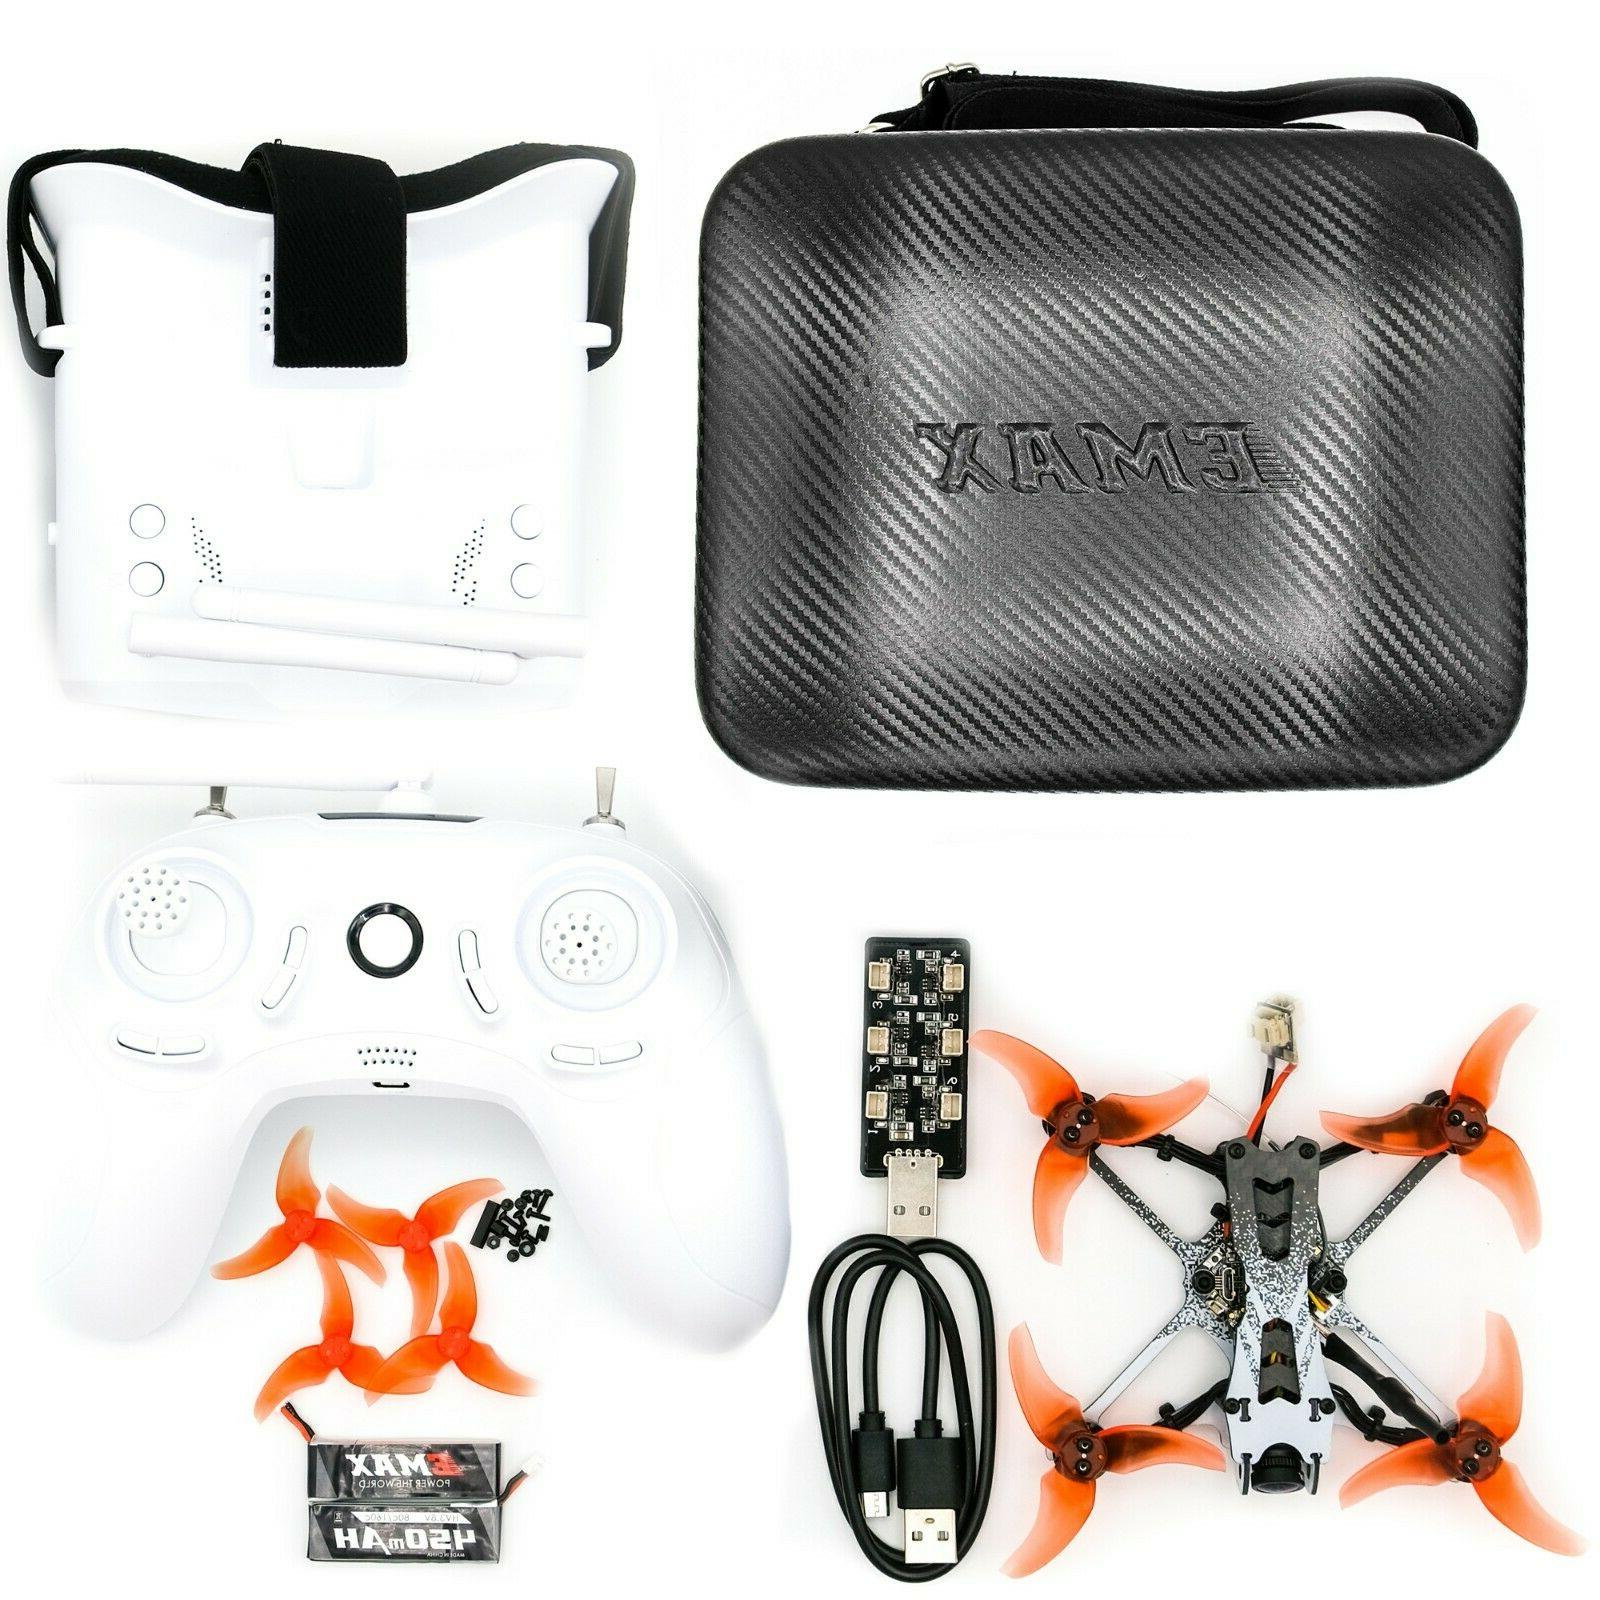 Tinyhawk Freestyle 2 Kit Drone with Goggles and for beginners